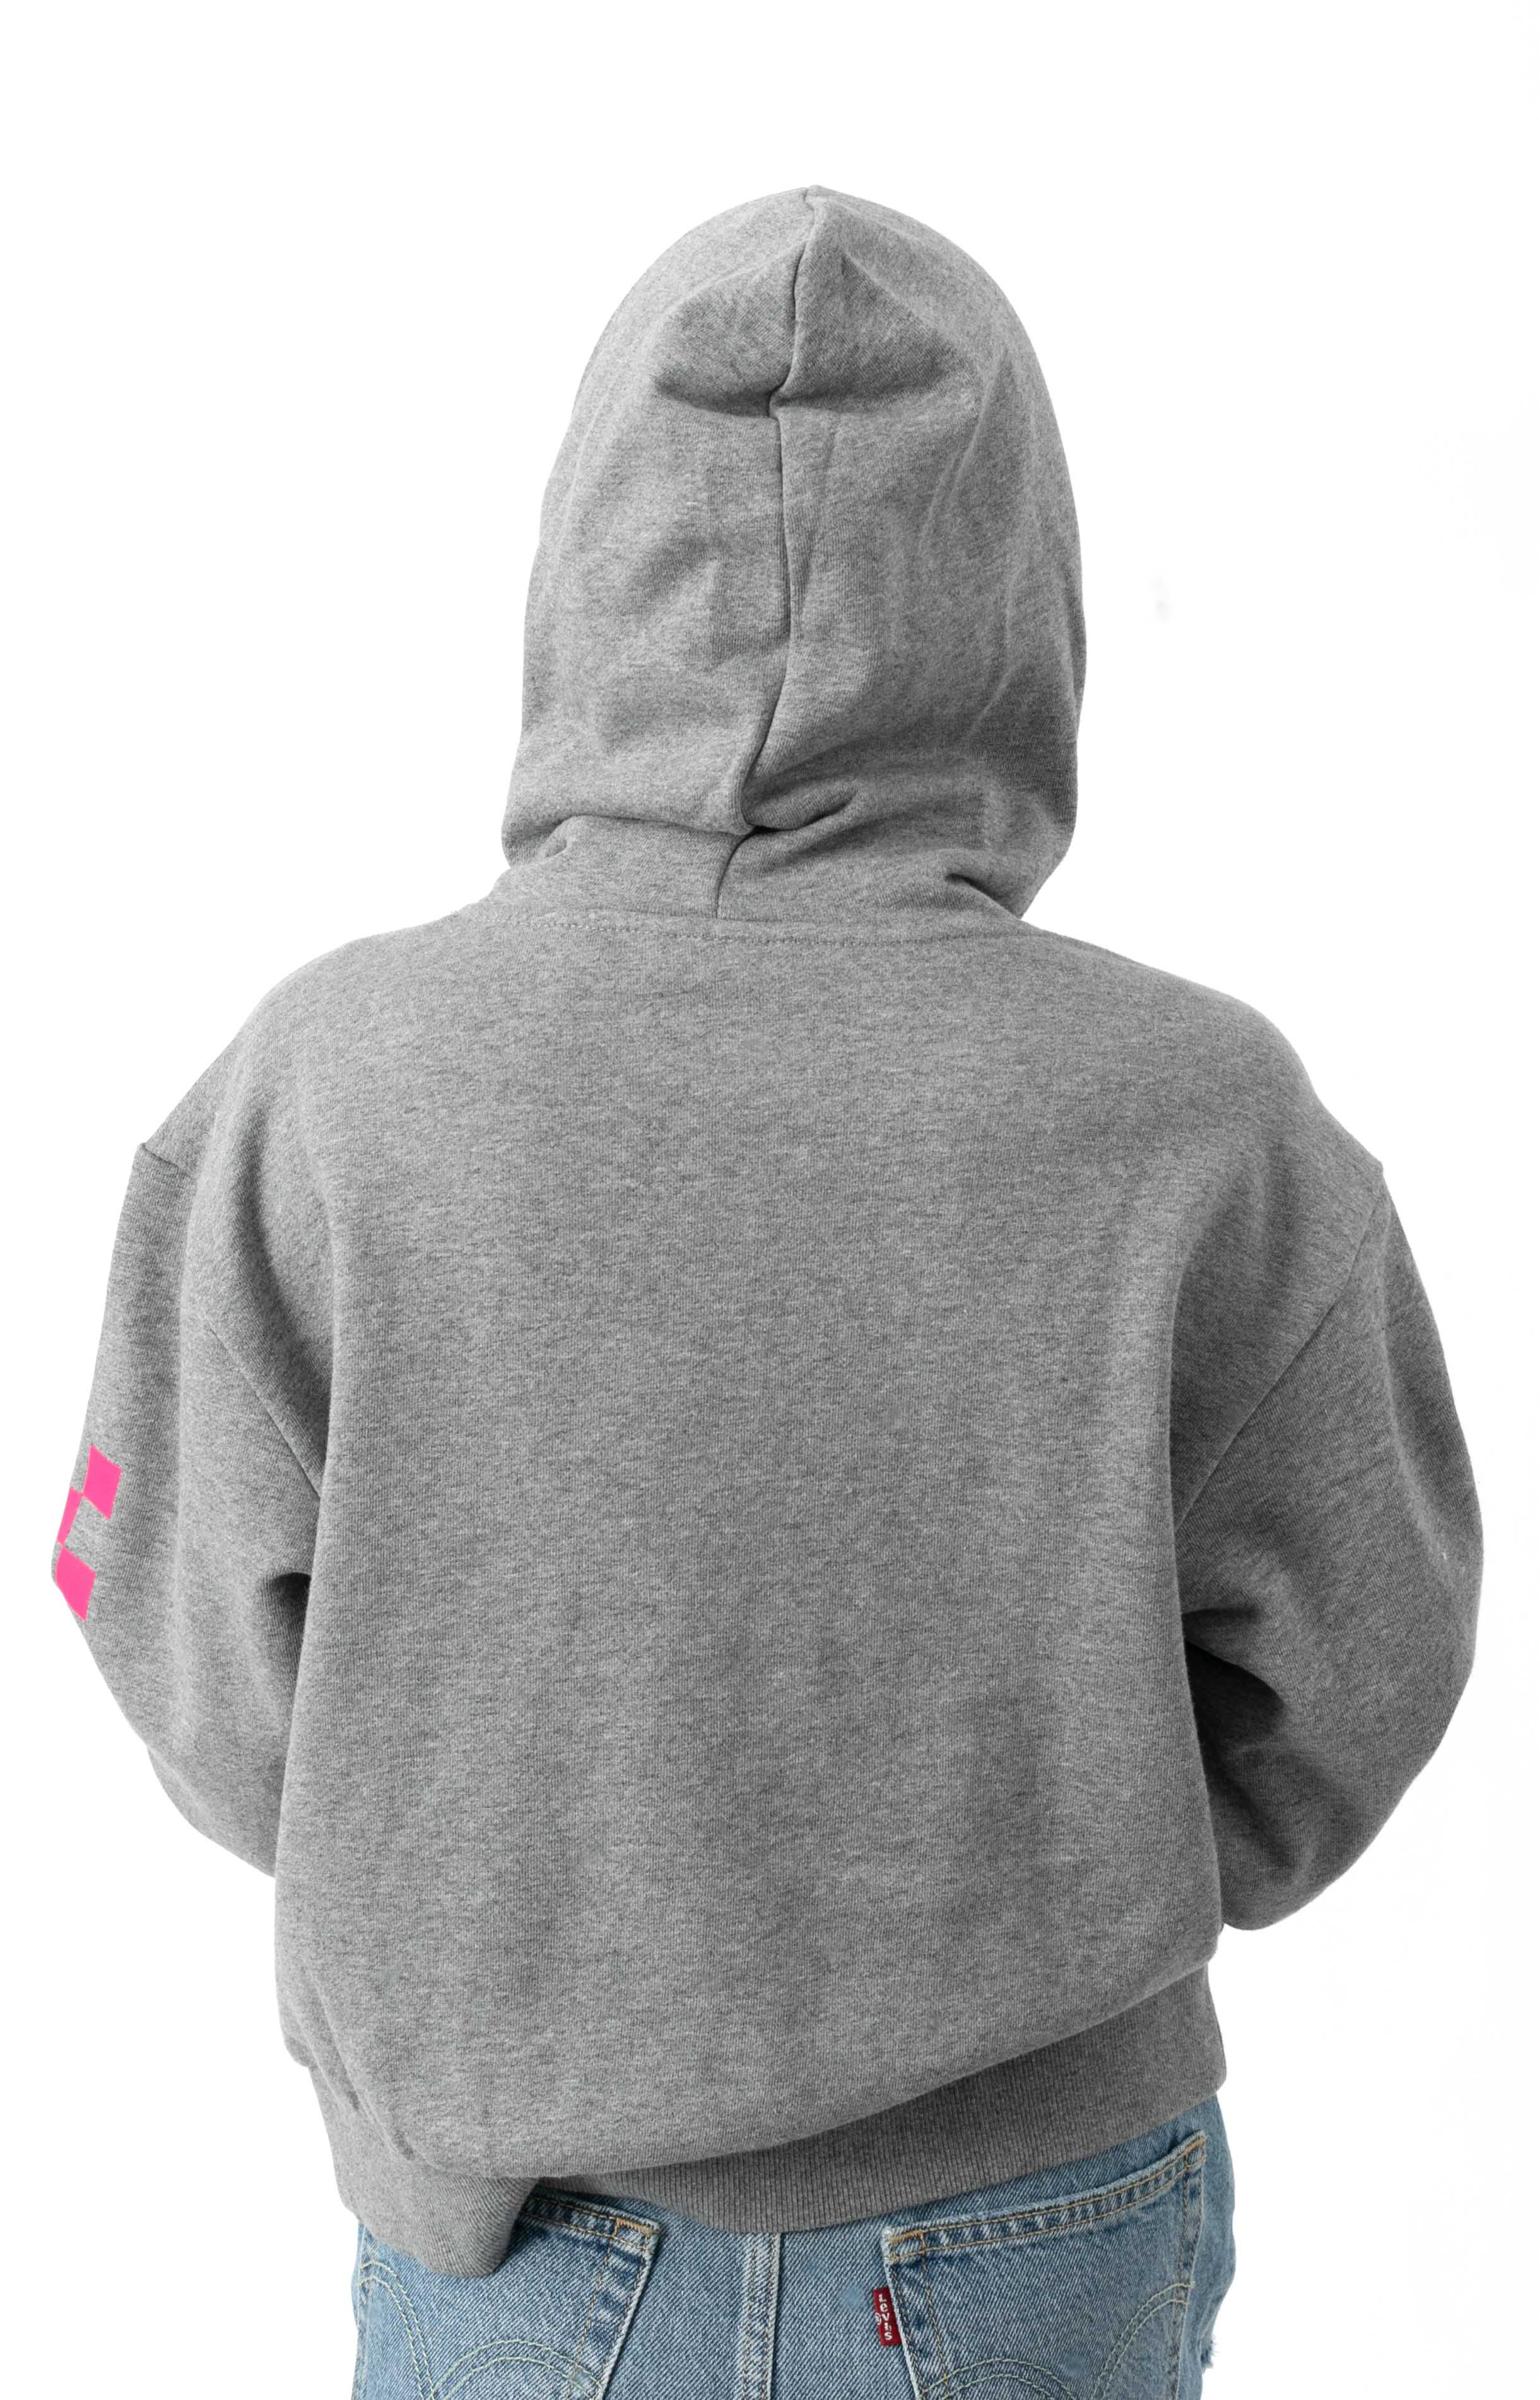 World Check Pullover Hoodie - Grey Heather  3